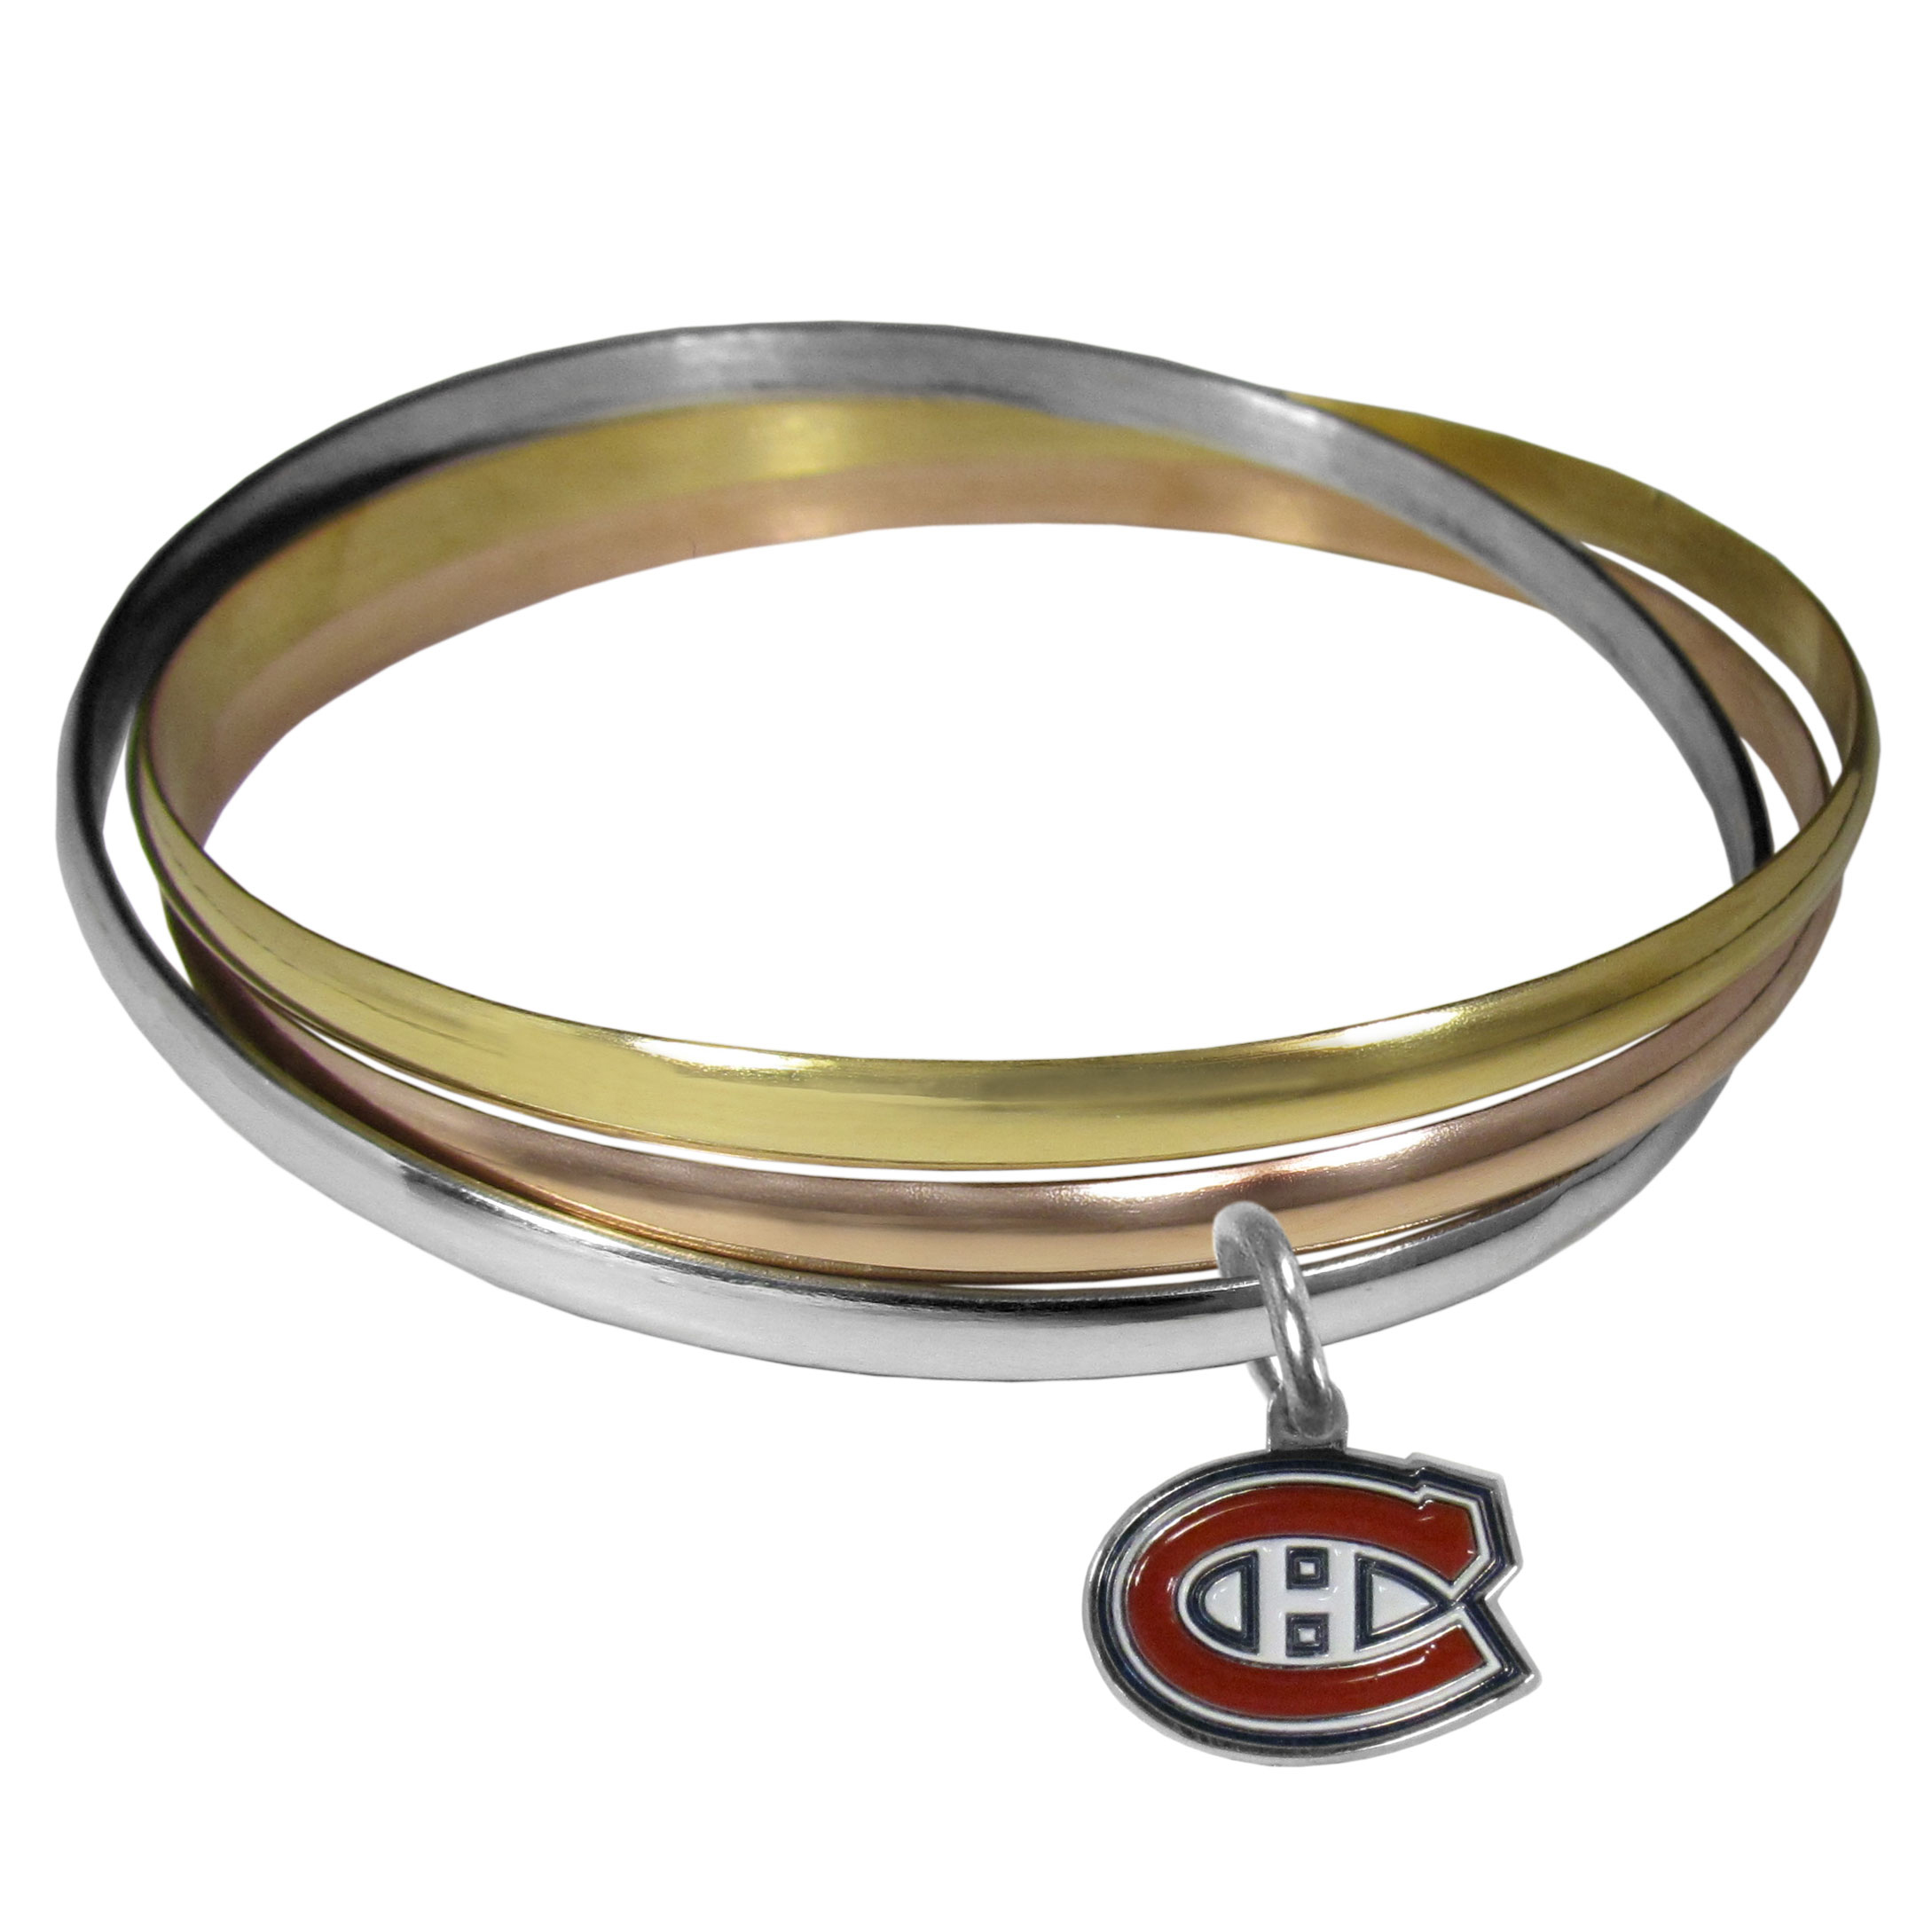 Montreal Canadiens® Tri-color Bangle Bracelet - These beautiful bangles come in a interlocking style and feature a fully cast Montreal Canadiens® charm with enameled team colors. The bracelet has a silver toned bangle, gold tone bangle and brass toned bangle.